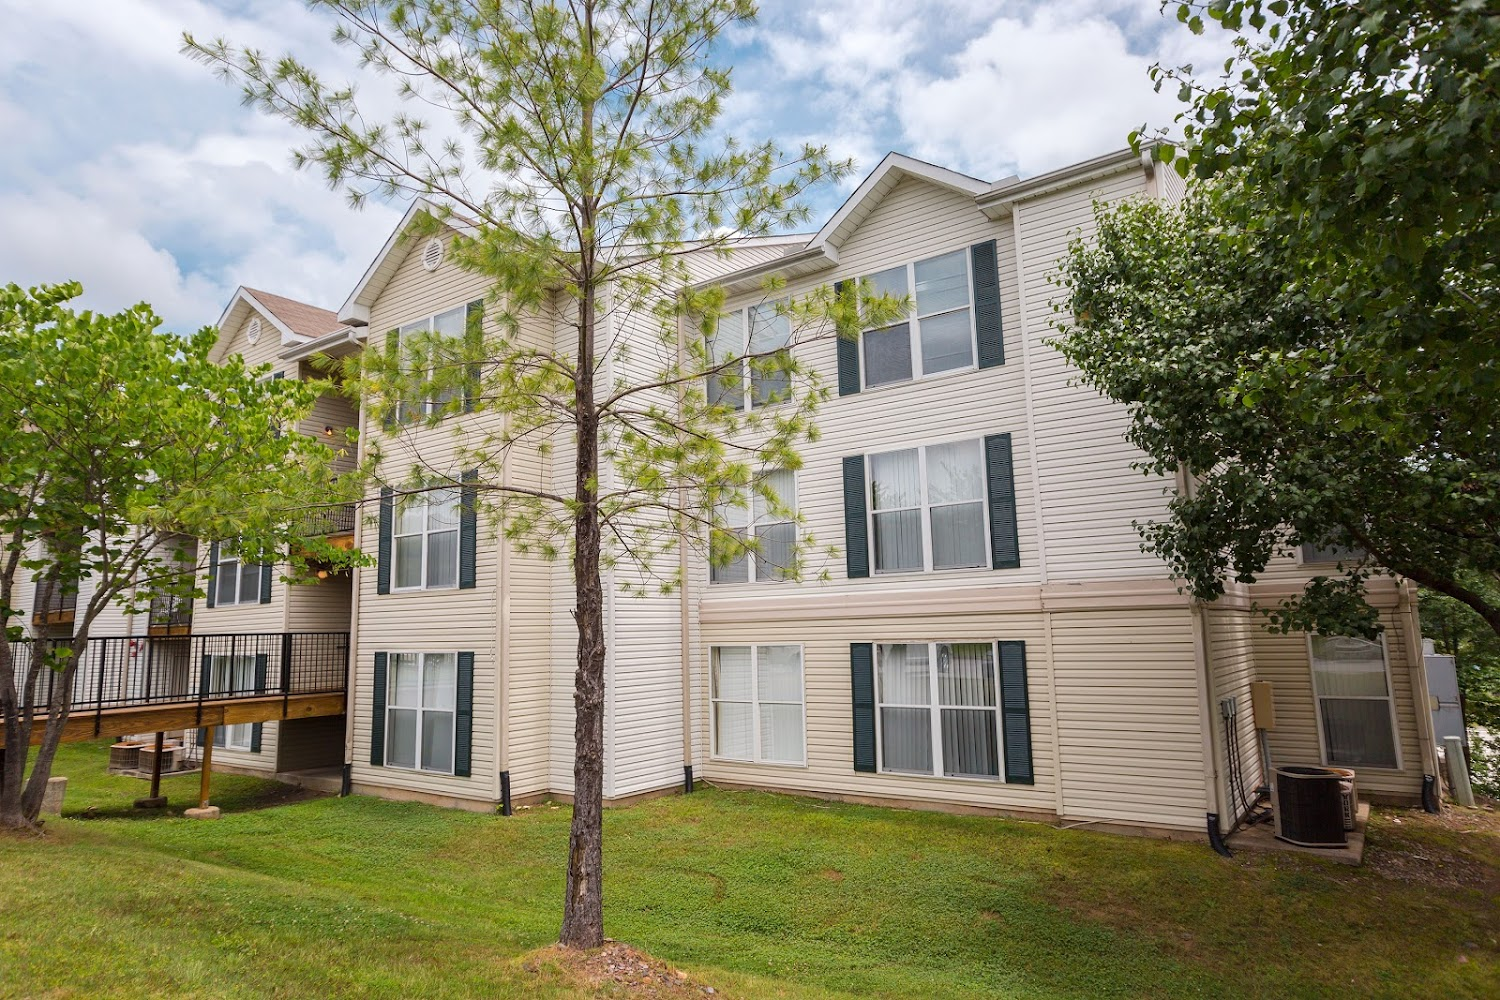 Westridge place apartments in little rock arkansas for 3 bedroom apartments in little rock ar